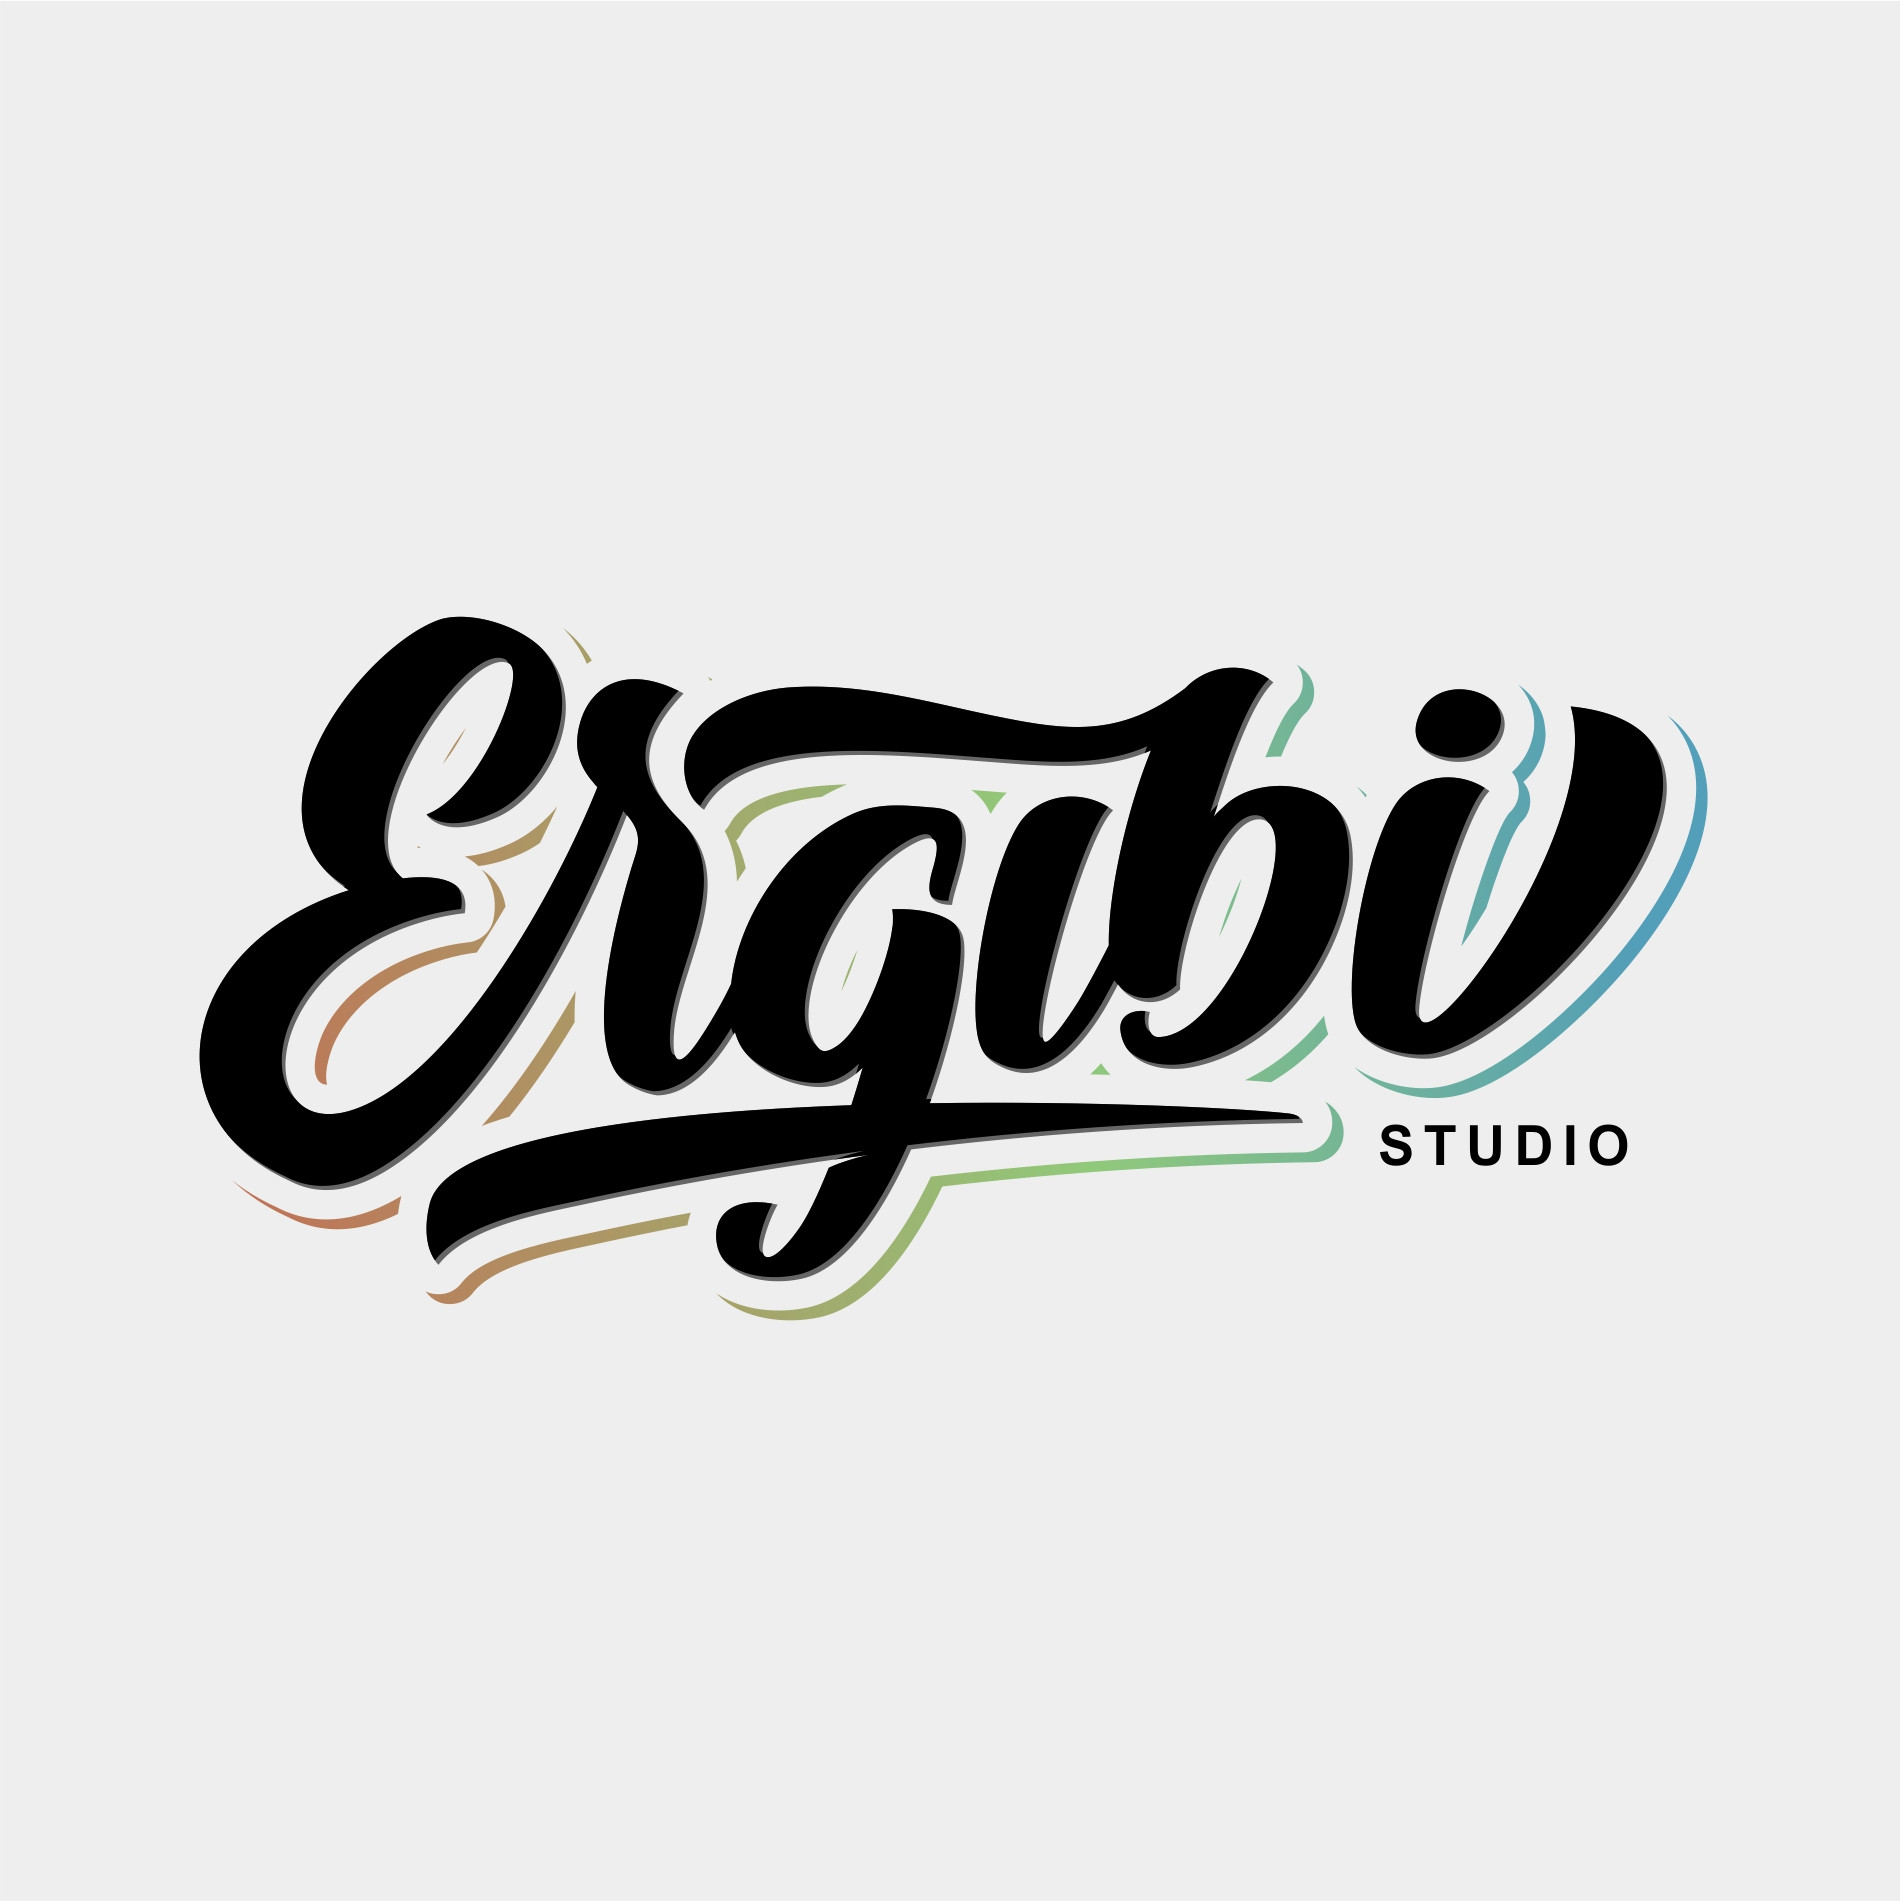 Ergibi Studio's profile picture